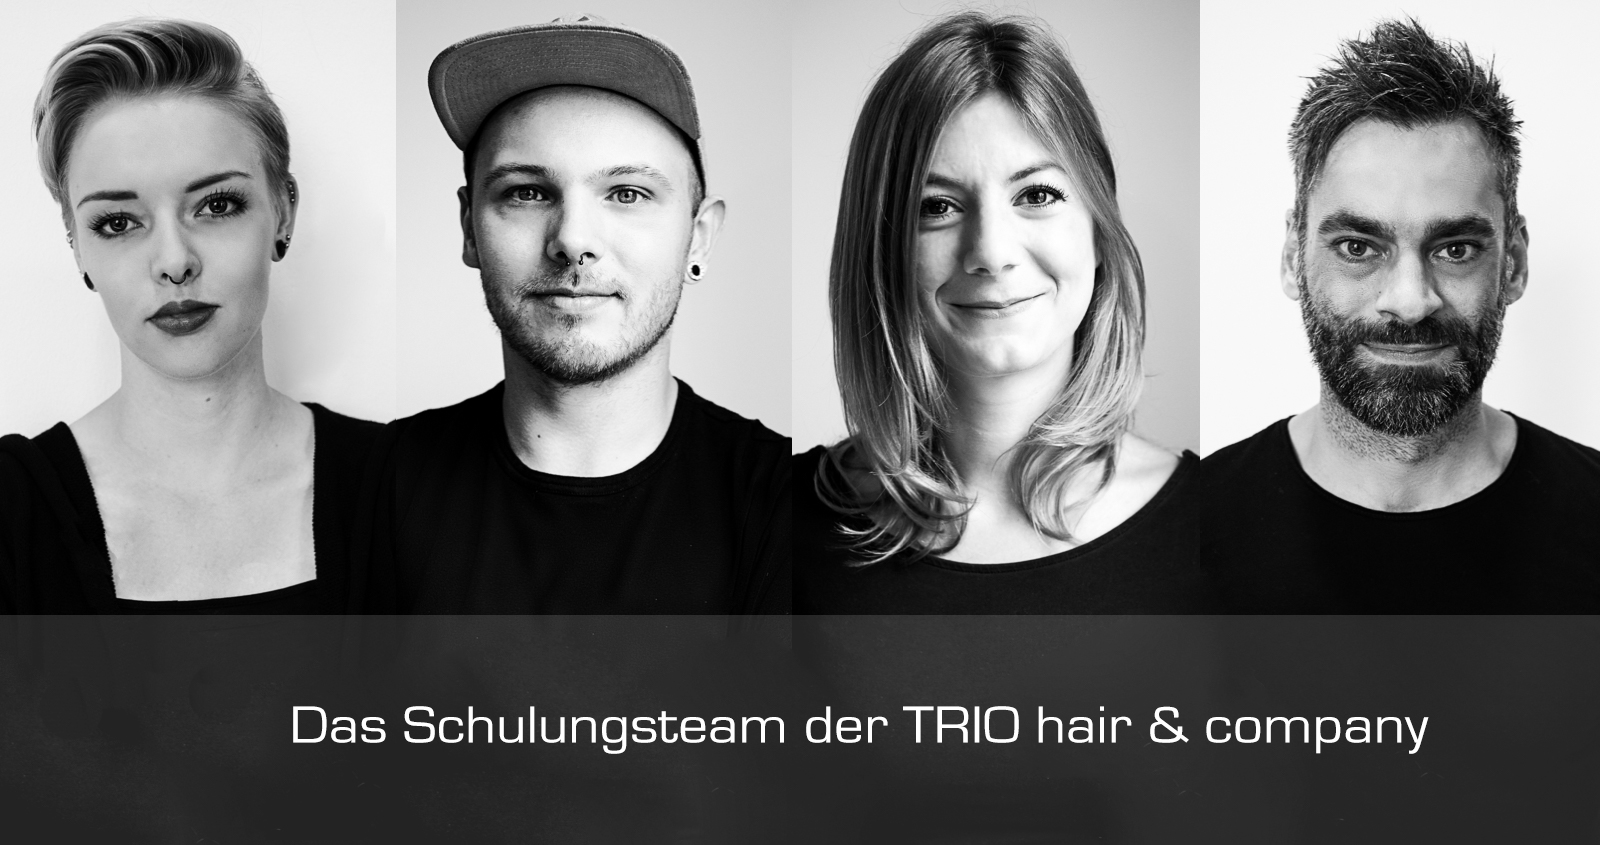 Team TRIO academy & salon